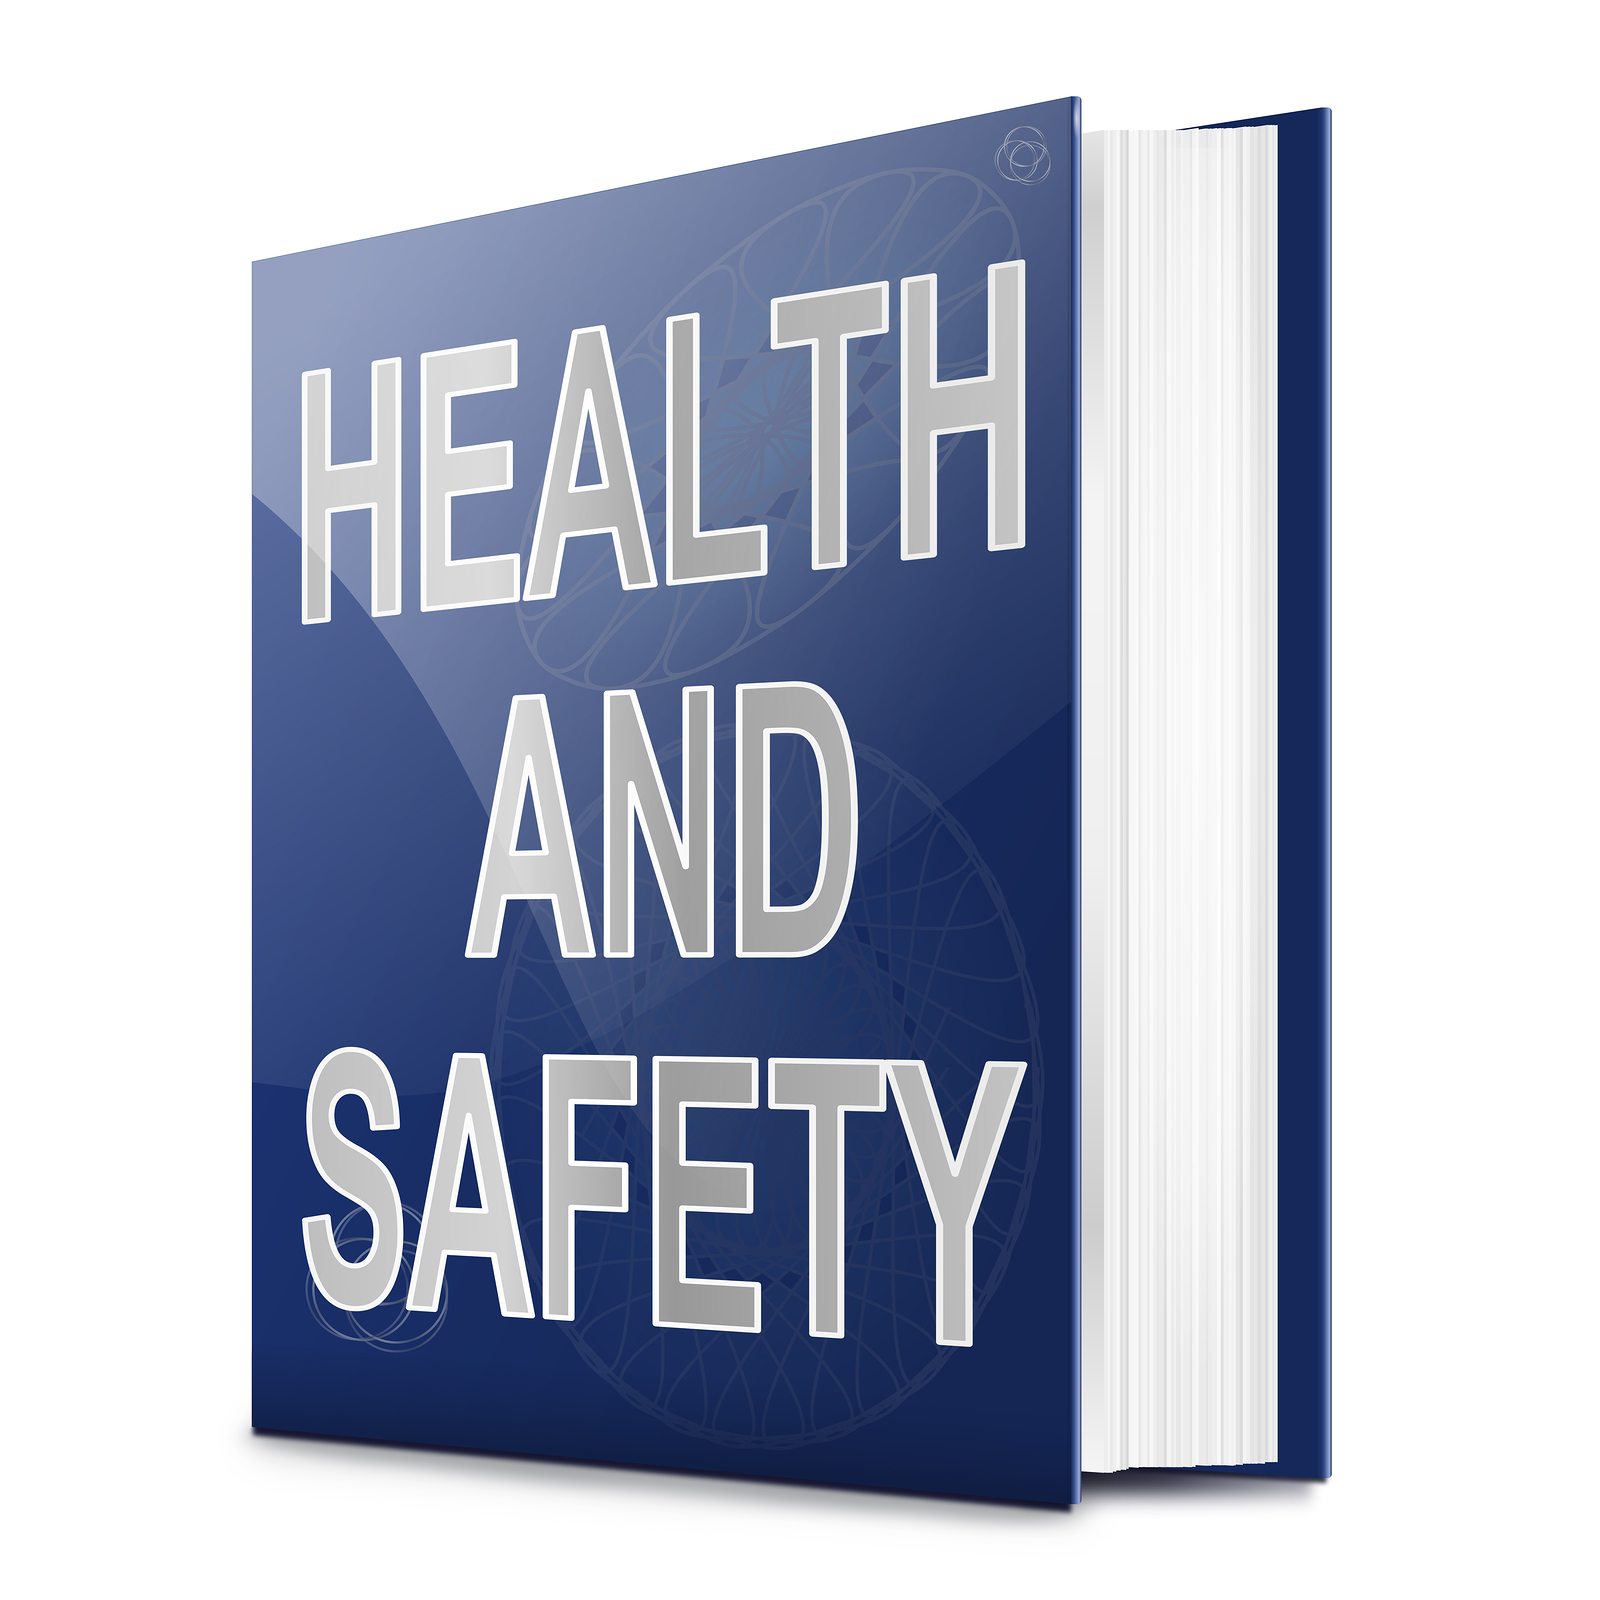 Establishing a safe work environment